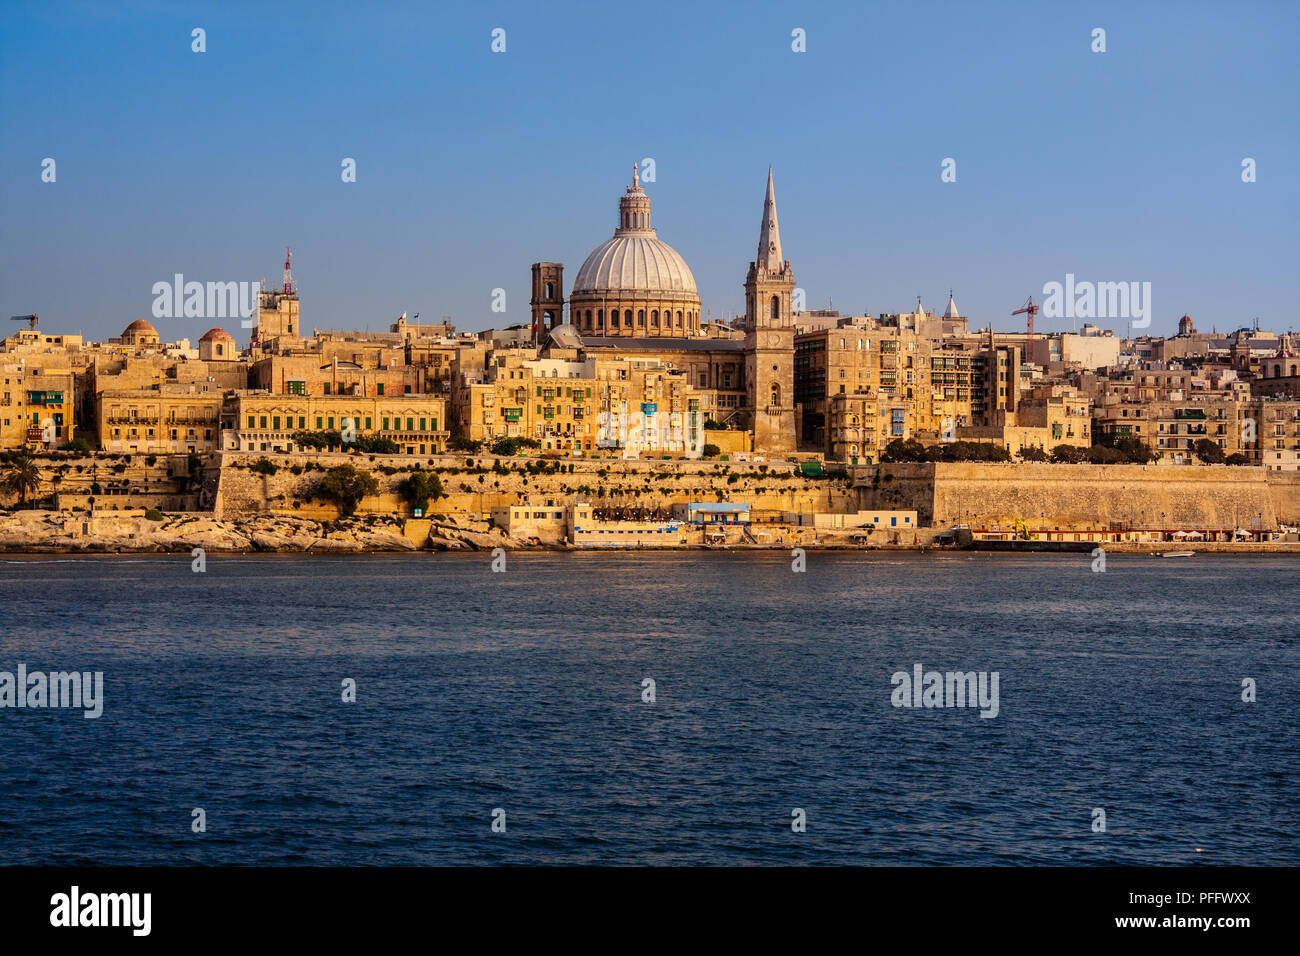 Panoramic view of the ancient capital Valletta, Malta - Stock Image